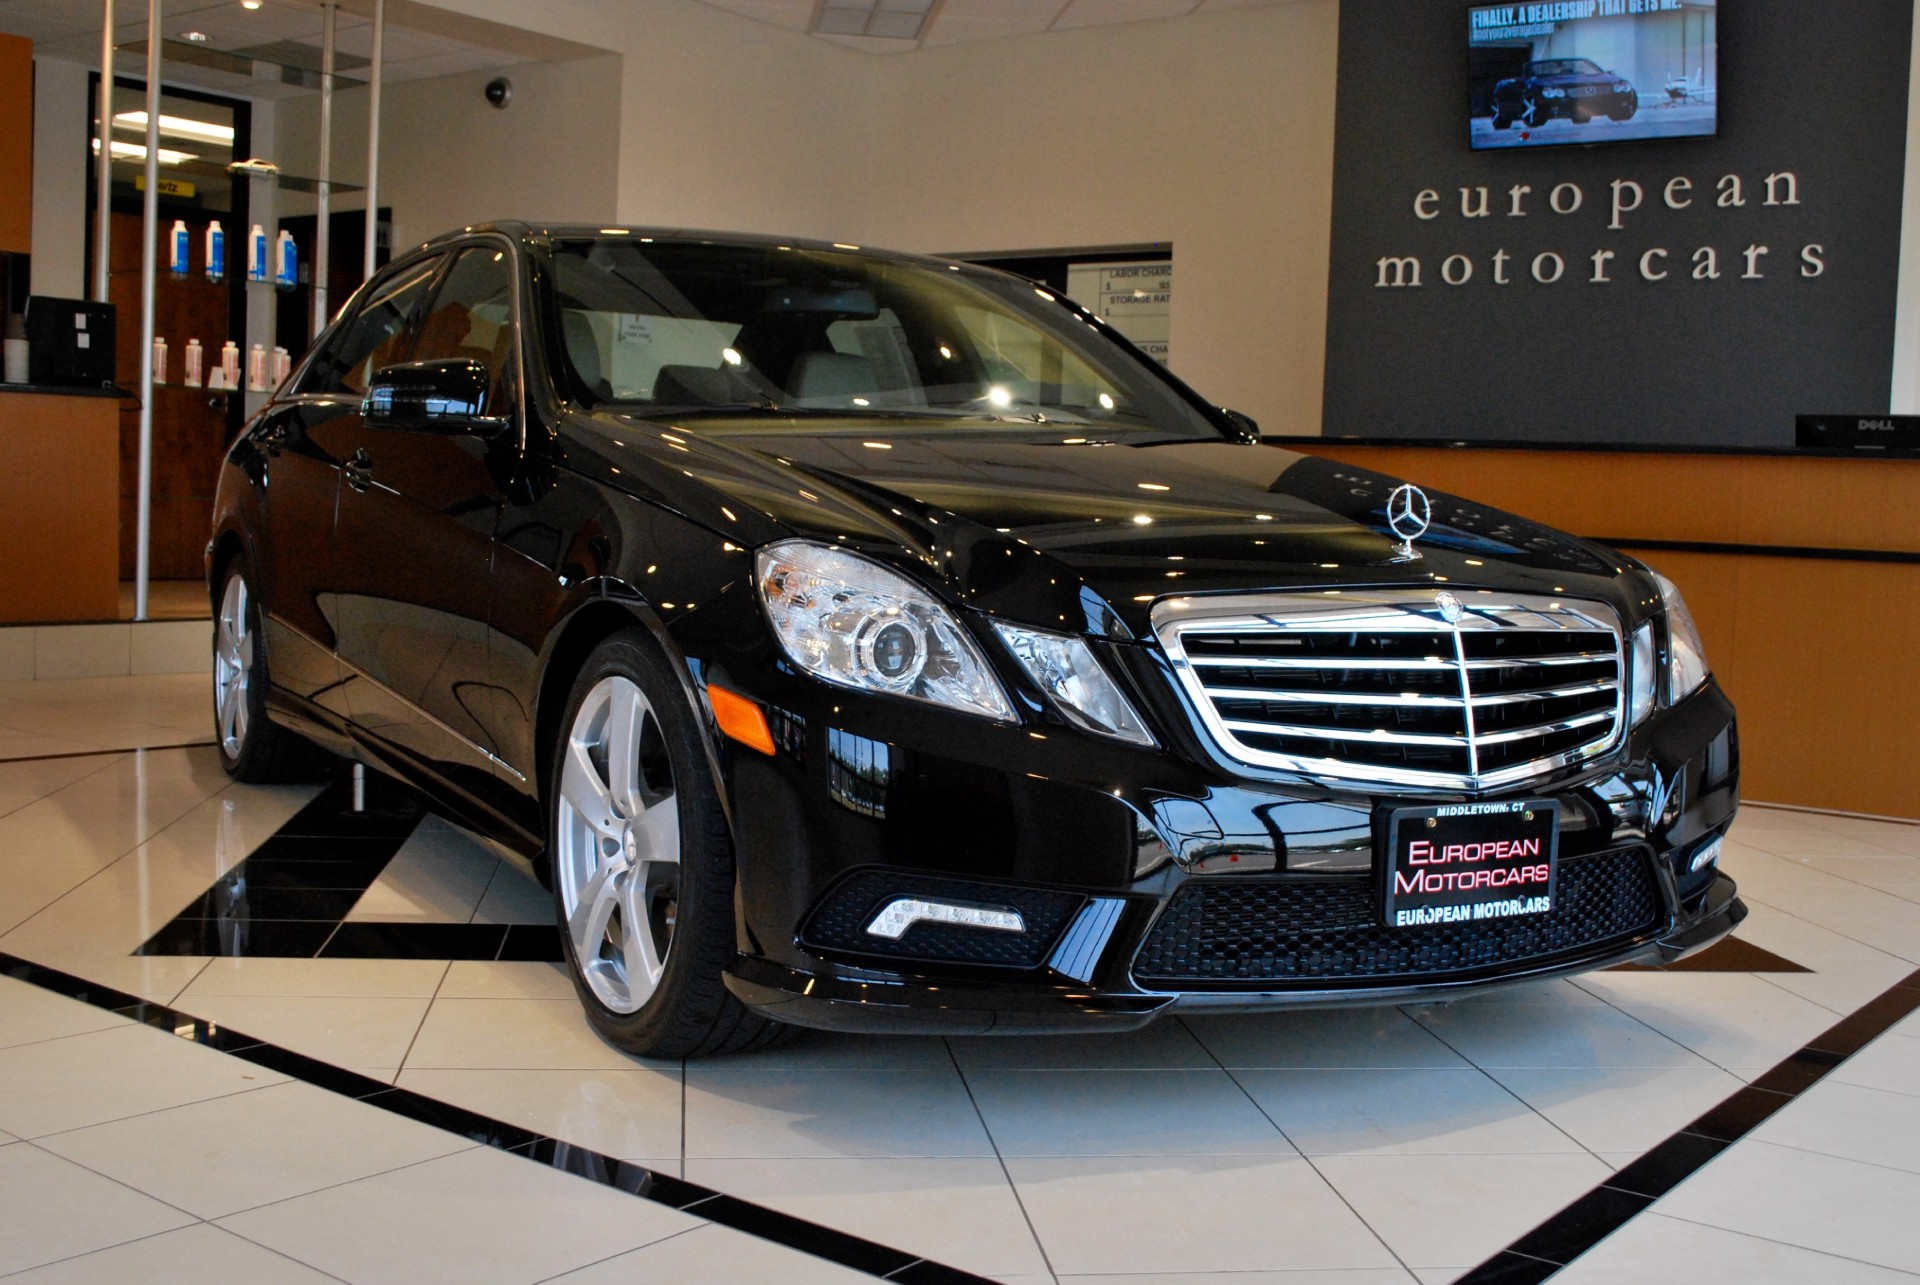 2011 mercedes benz e class e350 luxury 4matic for sale for Euro motorcars mercedes benz